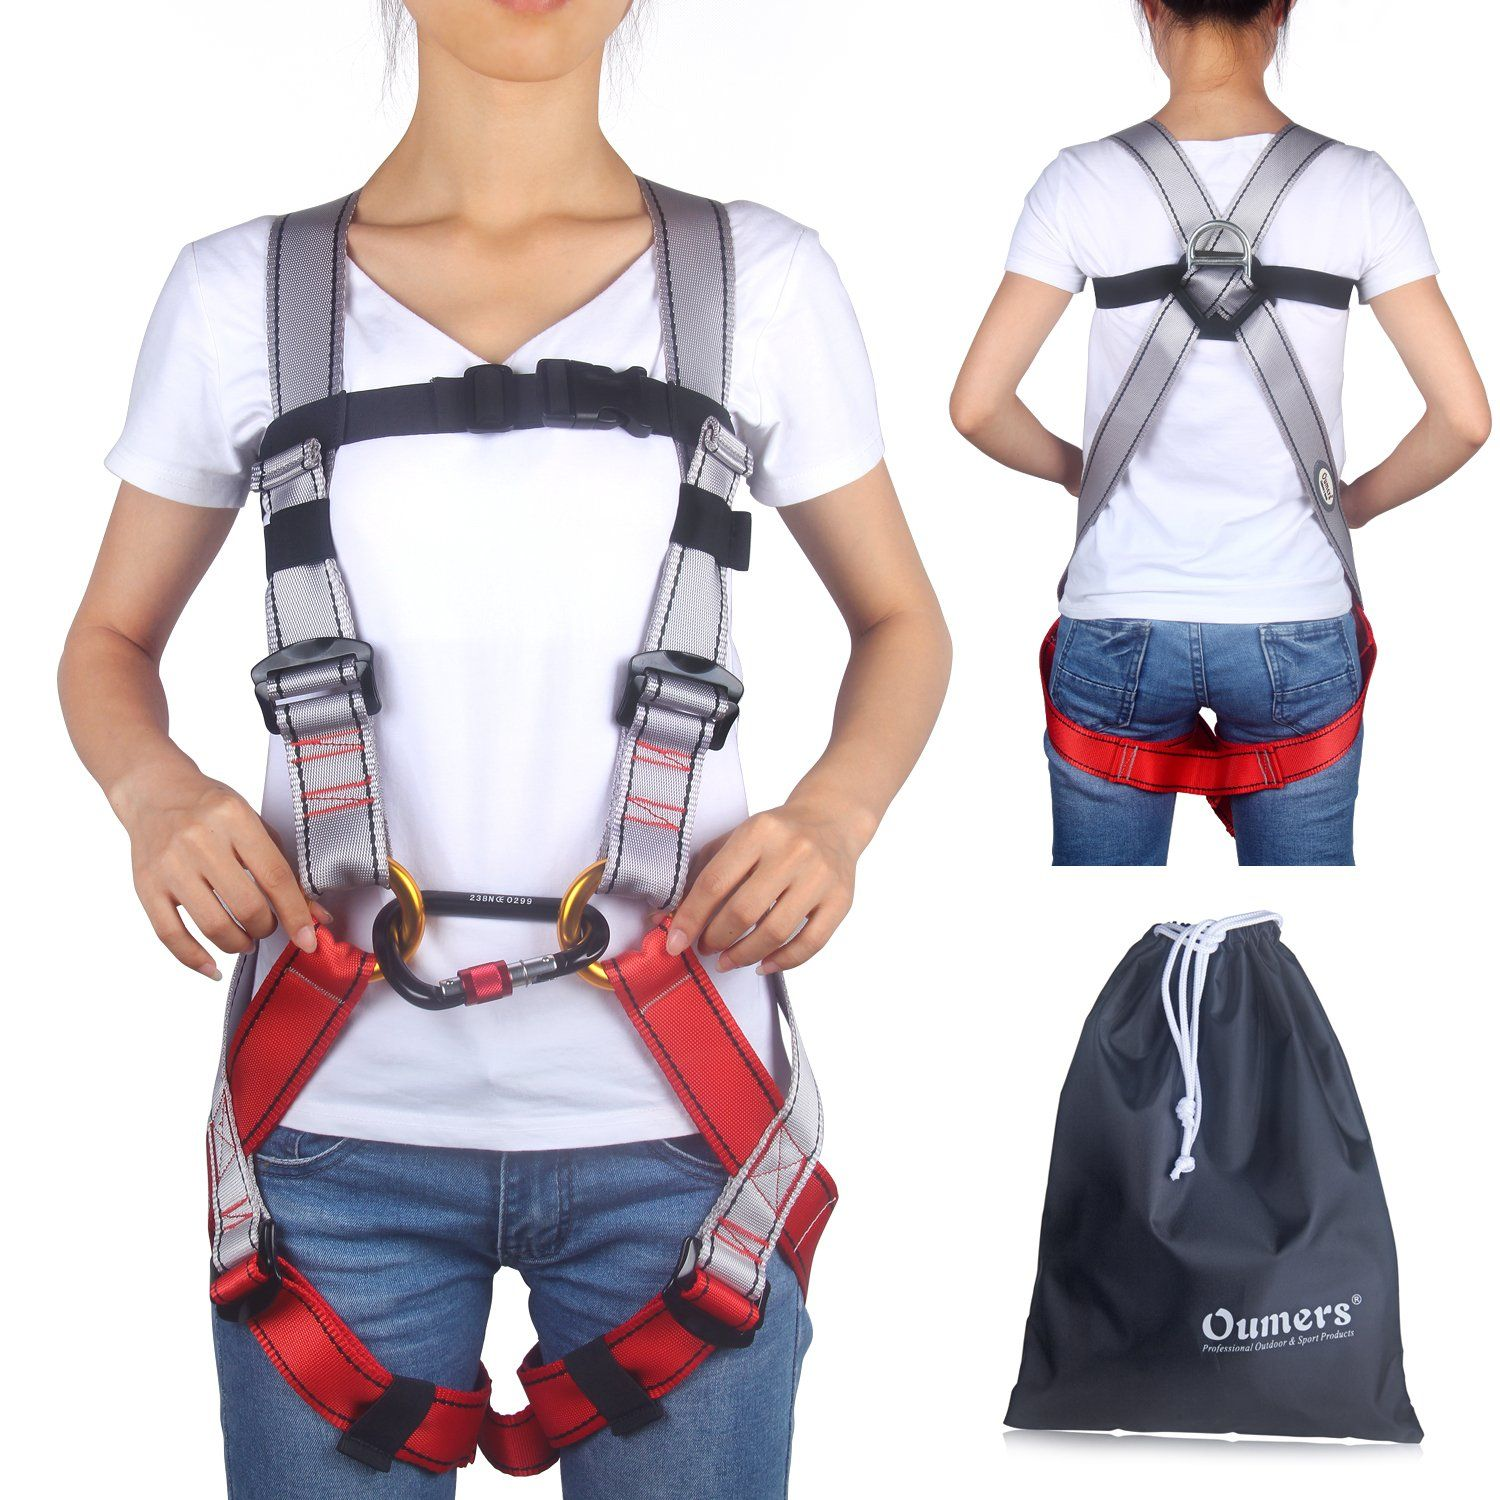 Pin it for later. Find out More rock climbing harness